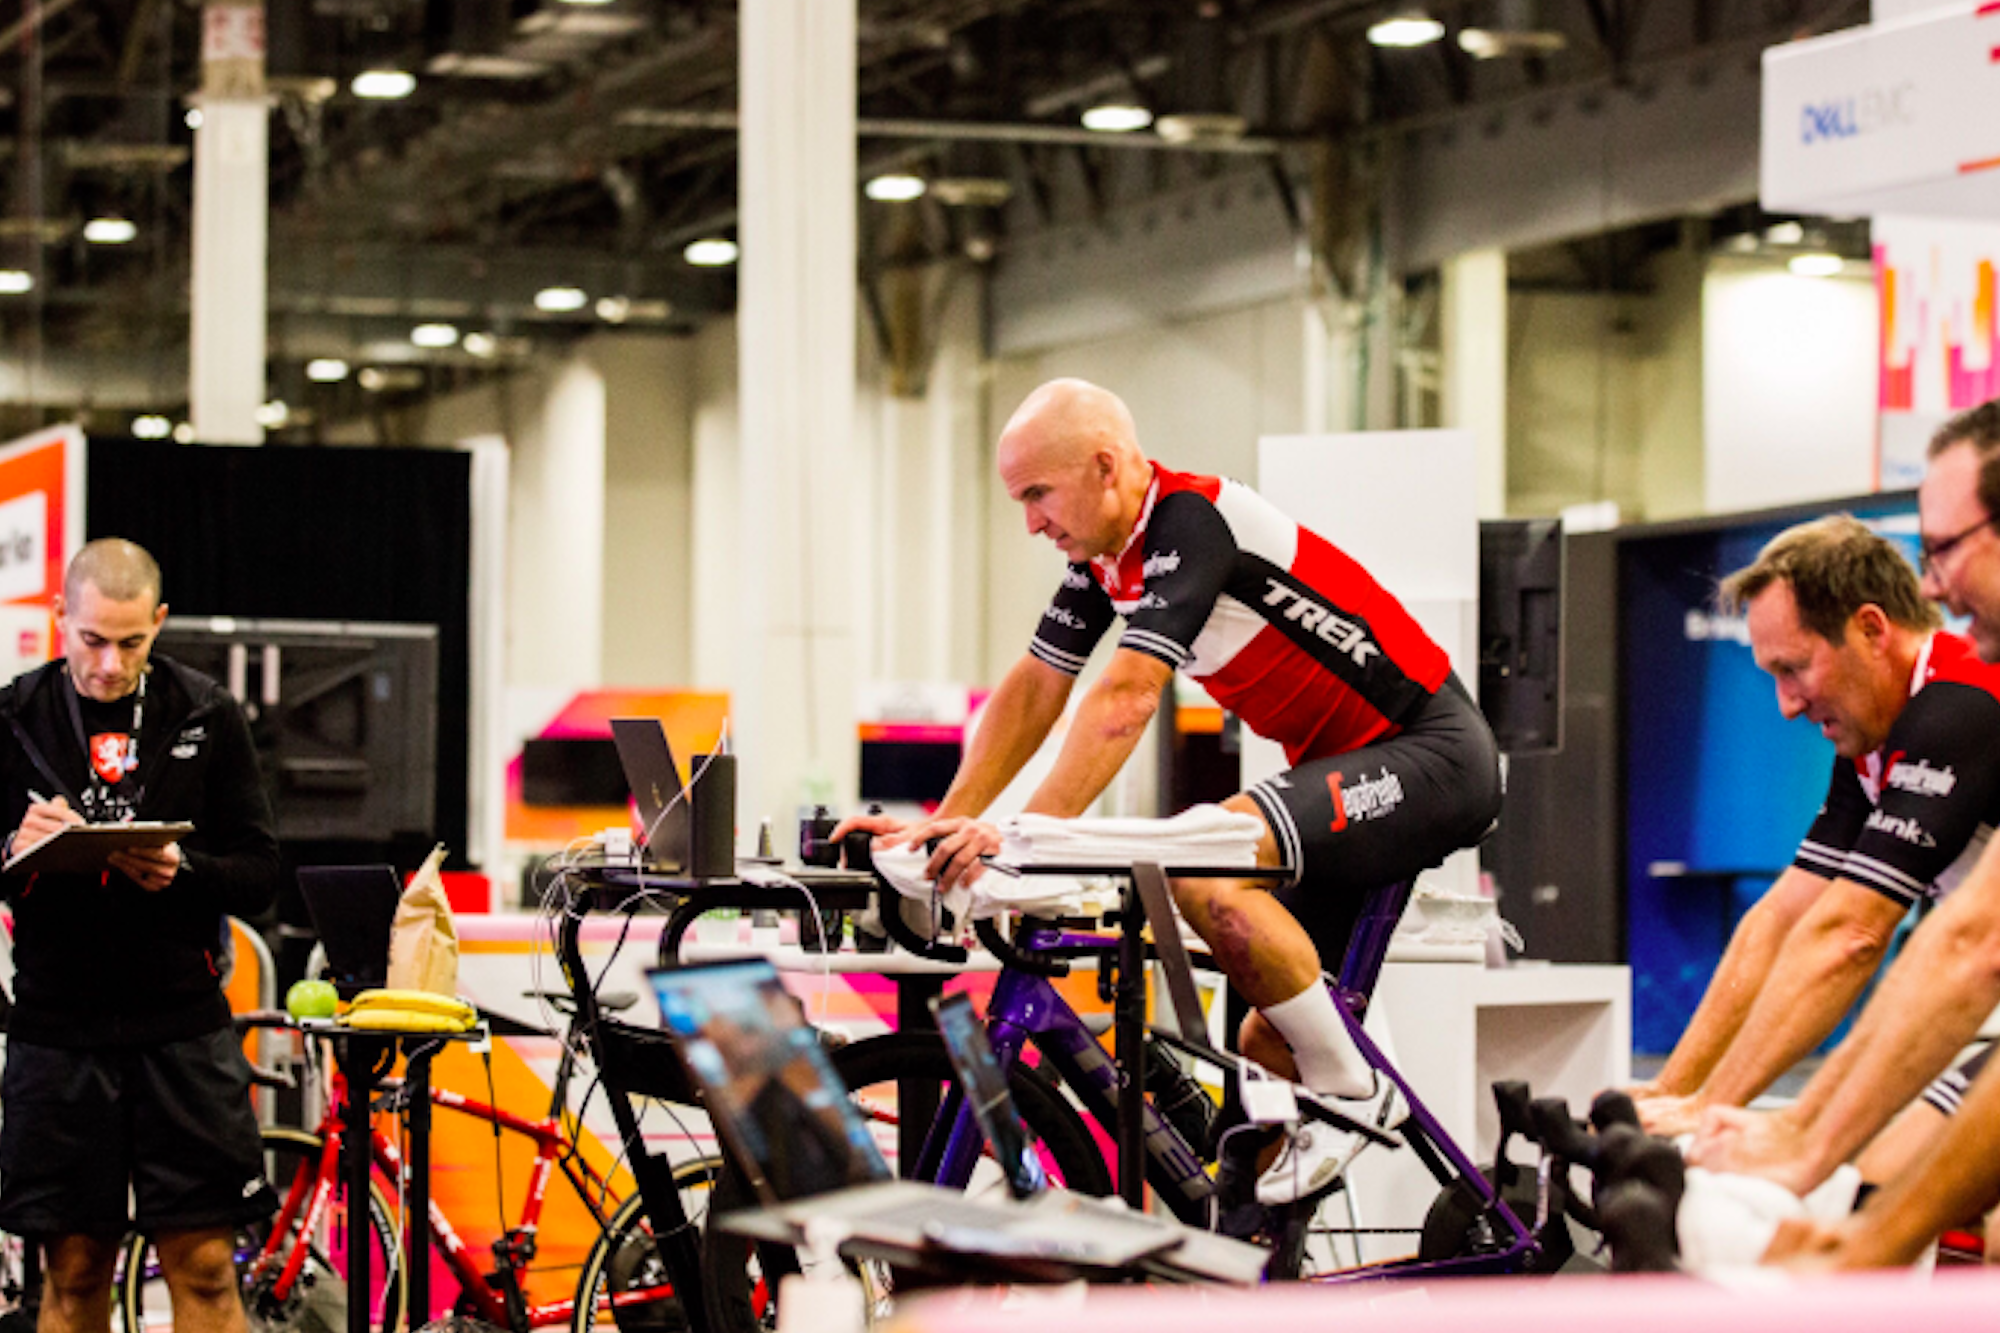 Canadian cyclist rides almost 1,000km on Zwift in 24 hours